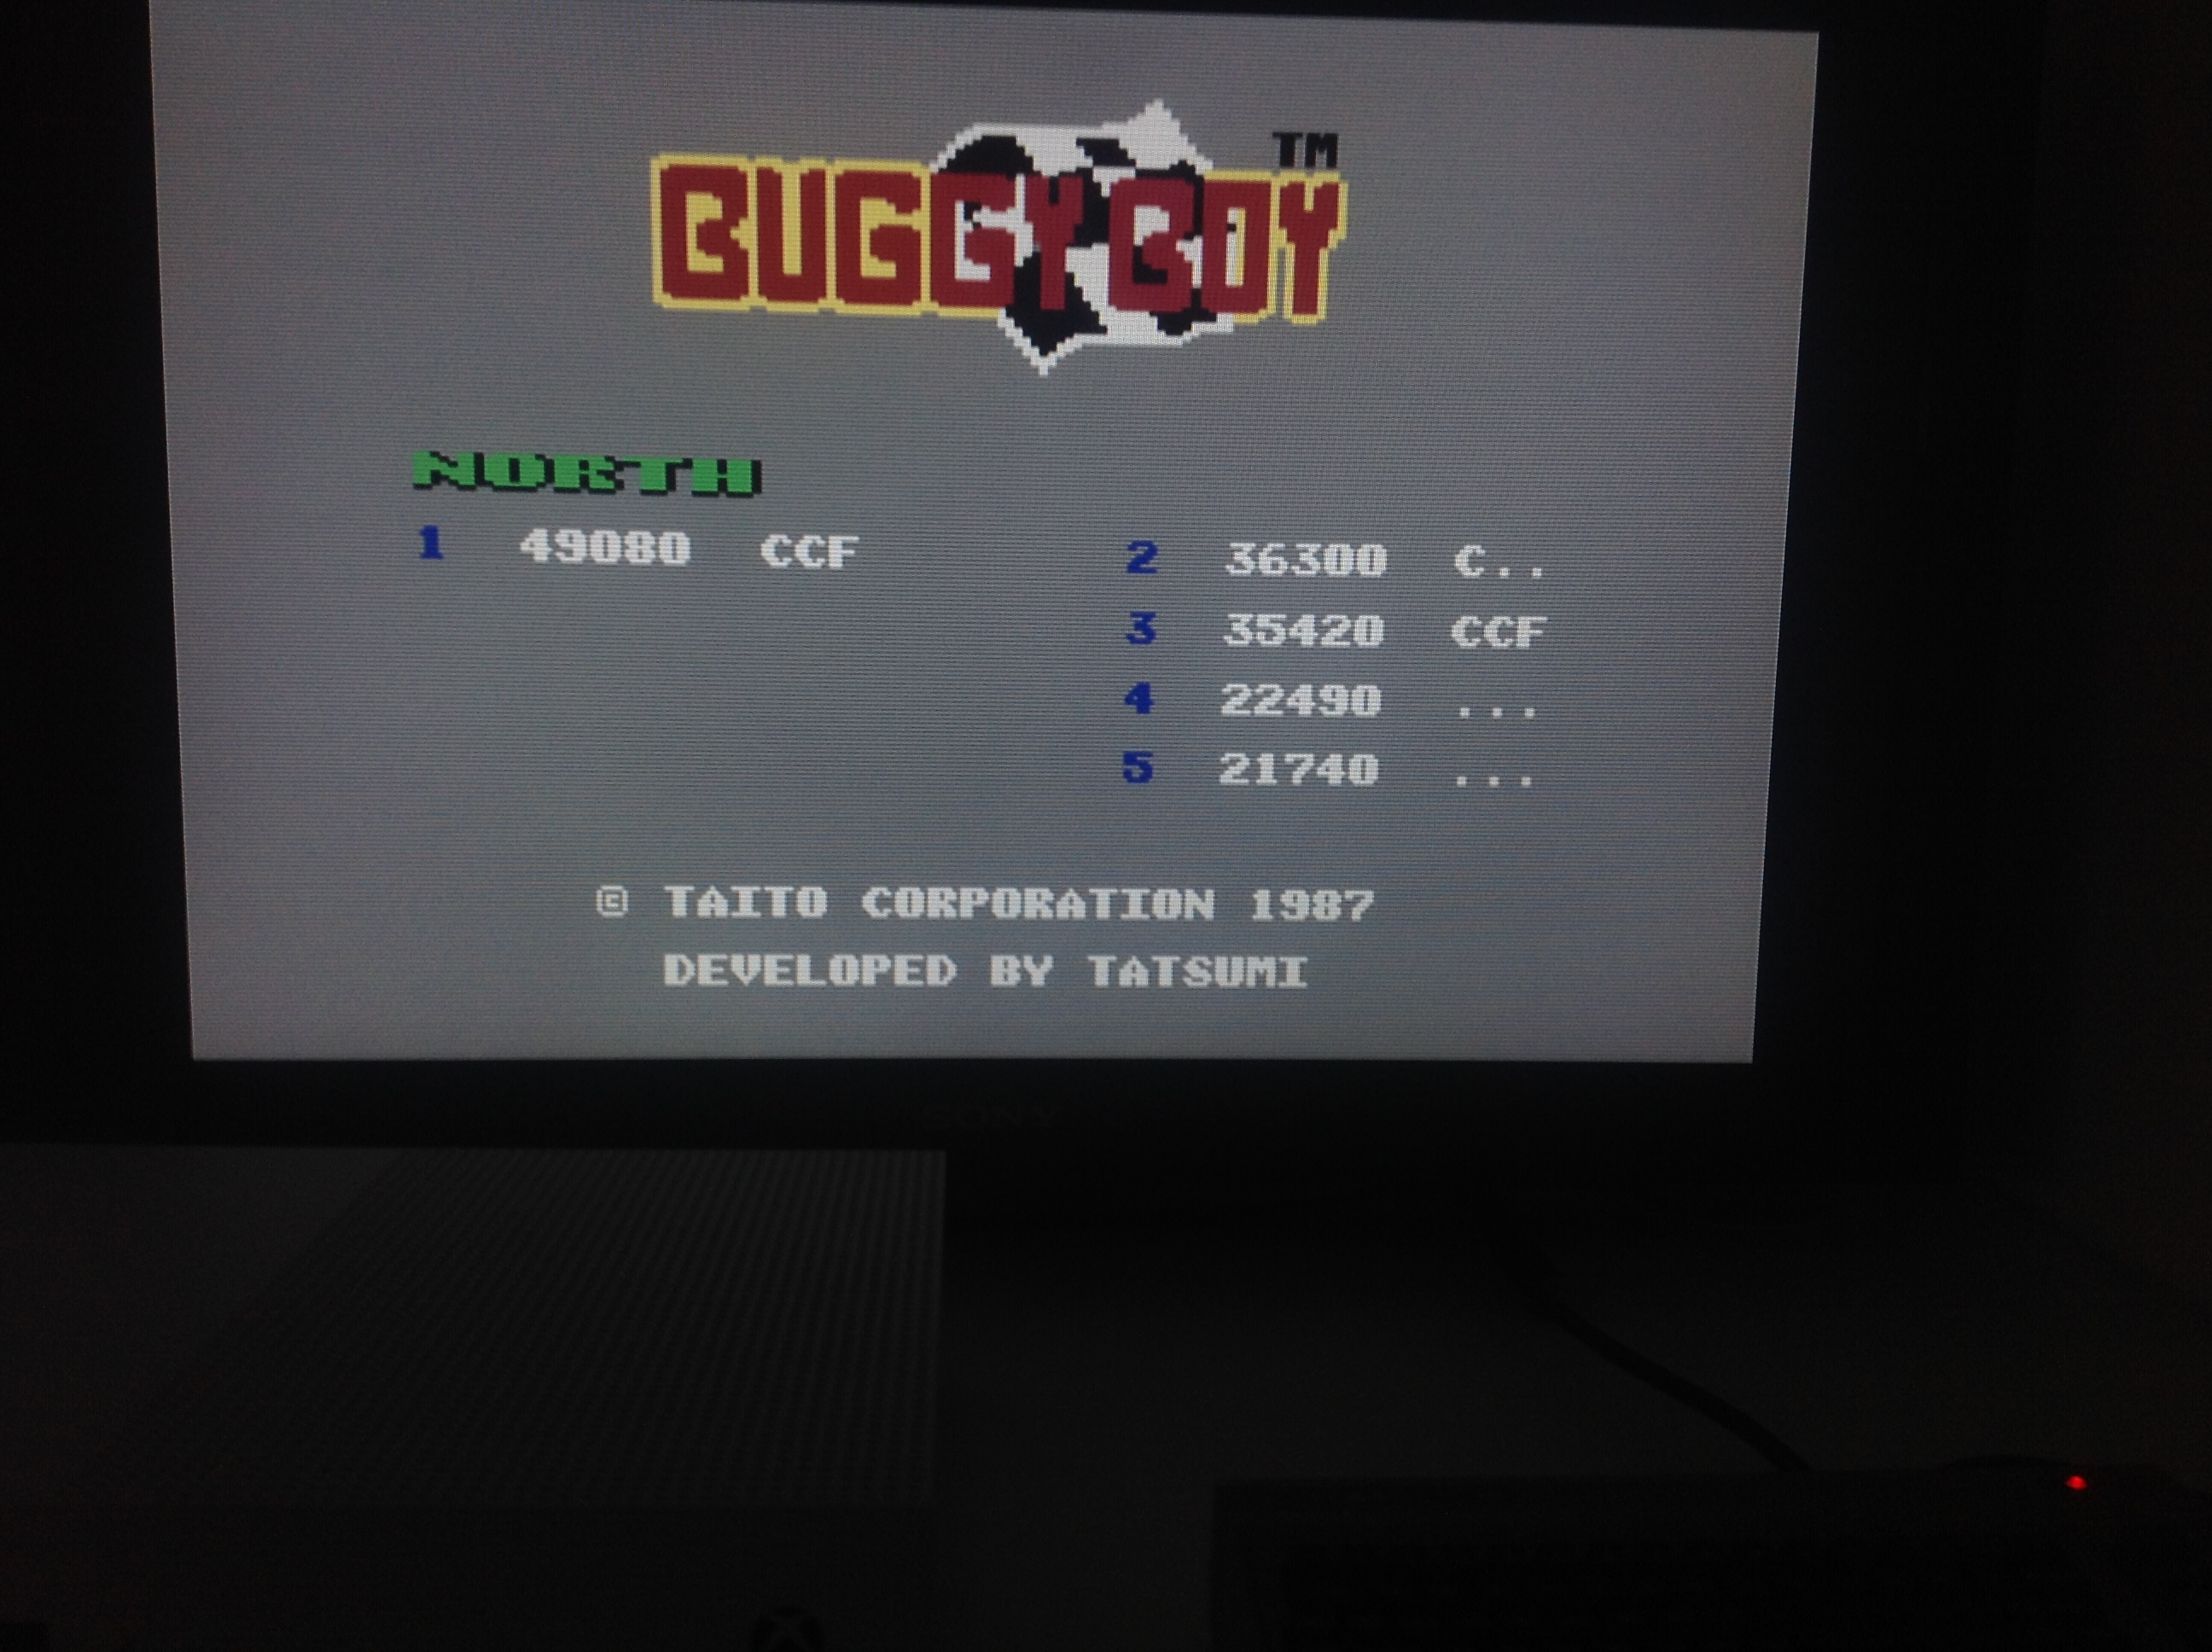 CoCoForest: Buggy Boy: North (Commodore 64 Emulated) 49,080 points on 2018-04-24 11:34:57